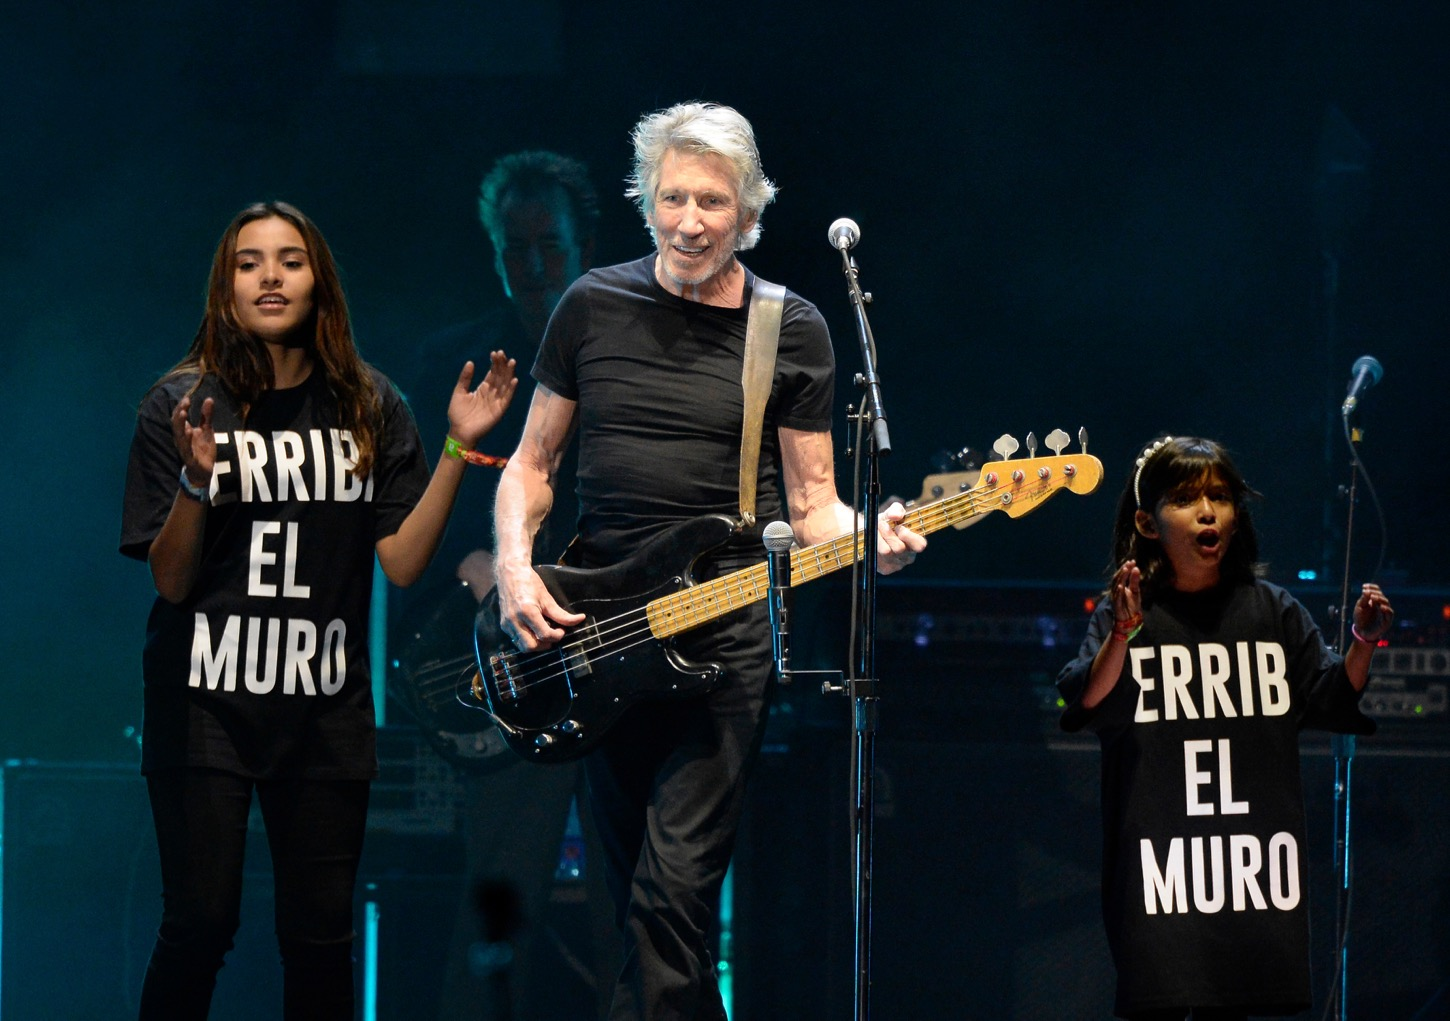 INDIO, CA - OCTOBER 16: Musician Roger Waters performs during Desert Trip at The Empire Polo Club on October 16, 2016 in Indio, California. (Photo by Kevin Mazur/Getty Images for Desert Trip). Used With Permission.